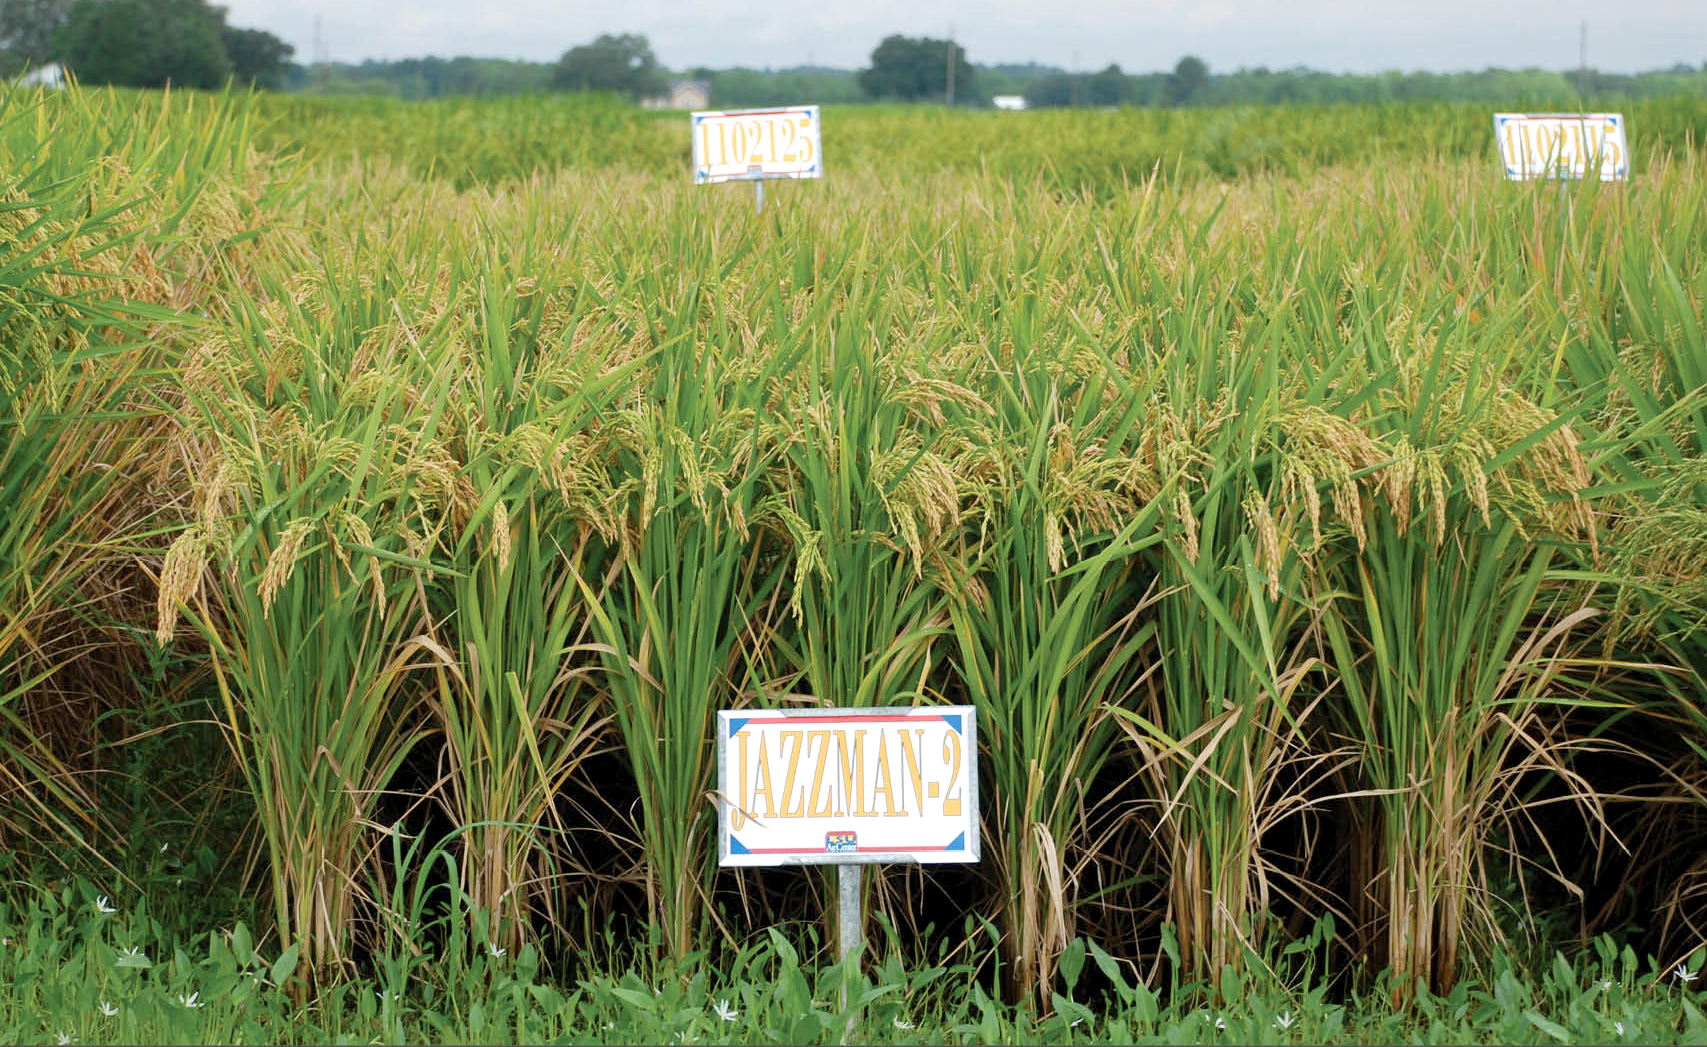 Jazzman varieties providing alternatives to imported aromatic rice